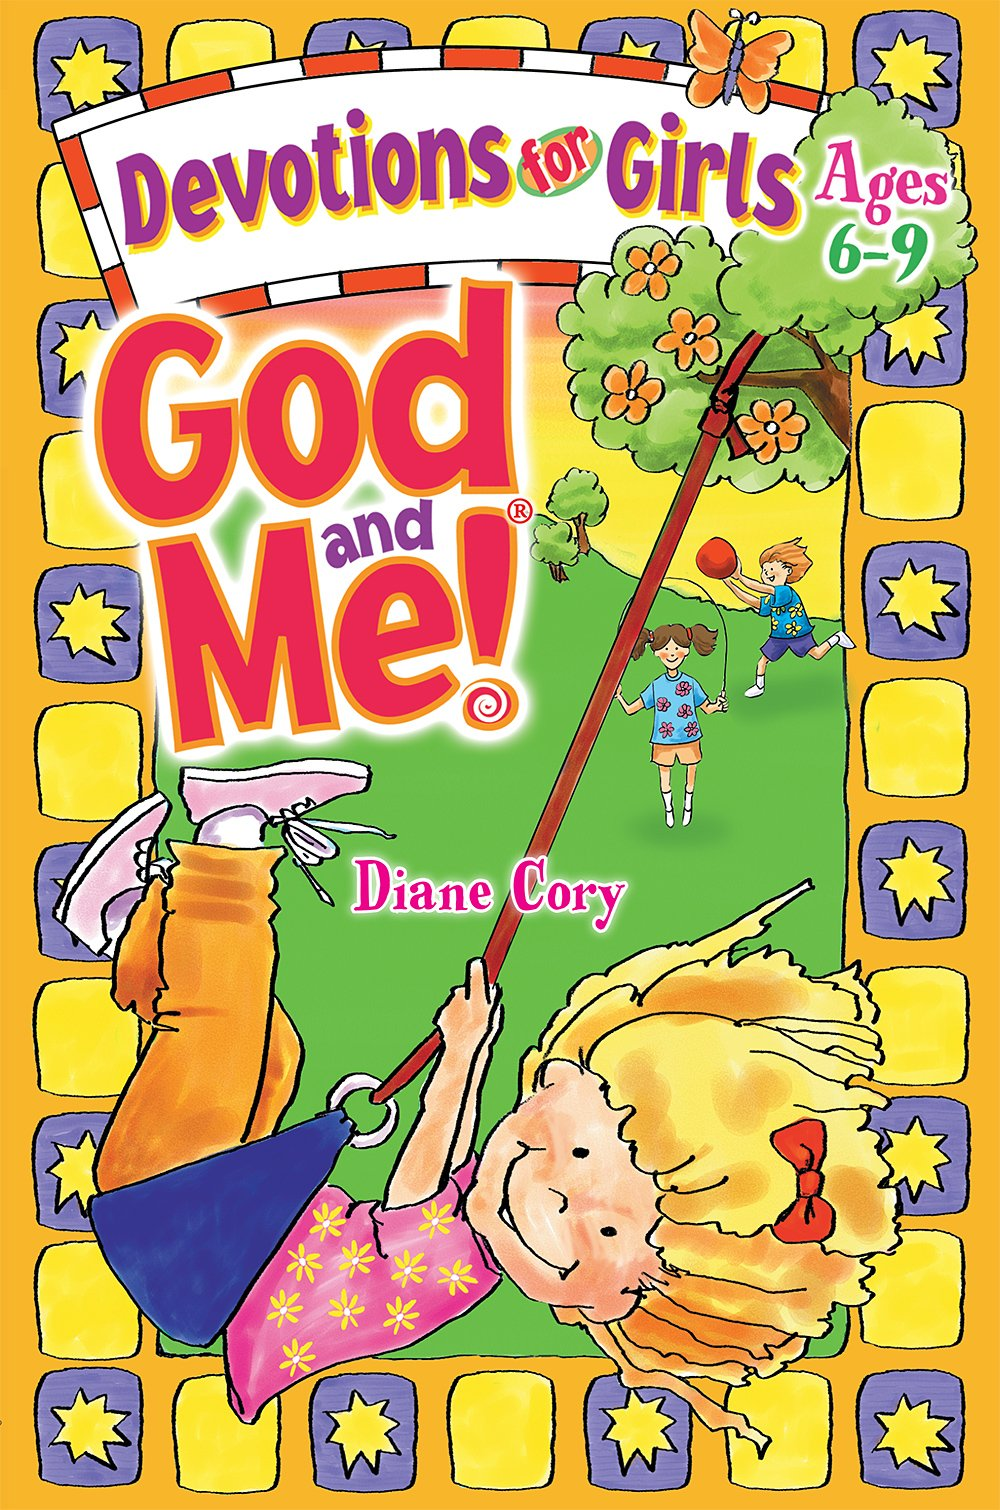 God and Me! Devotions for Girls Ages 6-9: Diane Cory, RoseKidz:  9781885358608: Amazon.com: Books